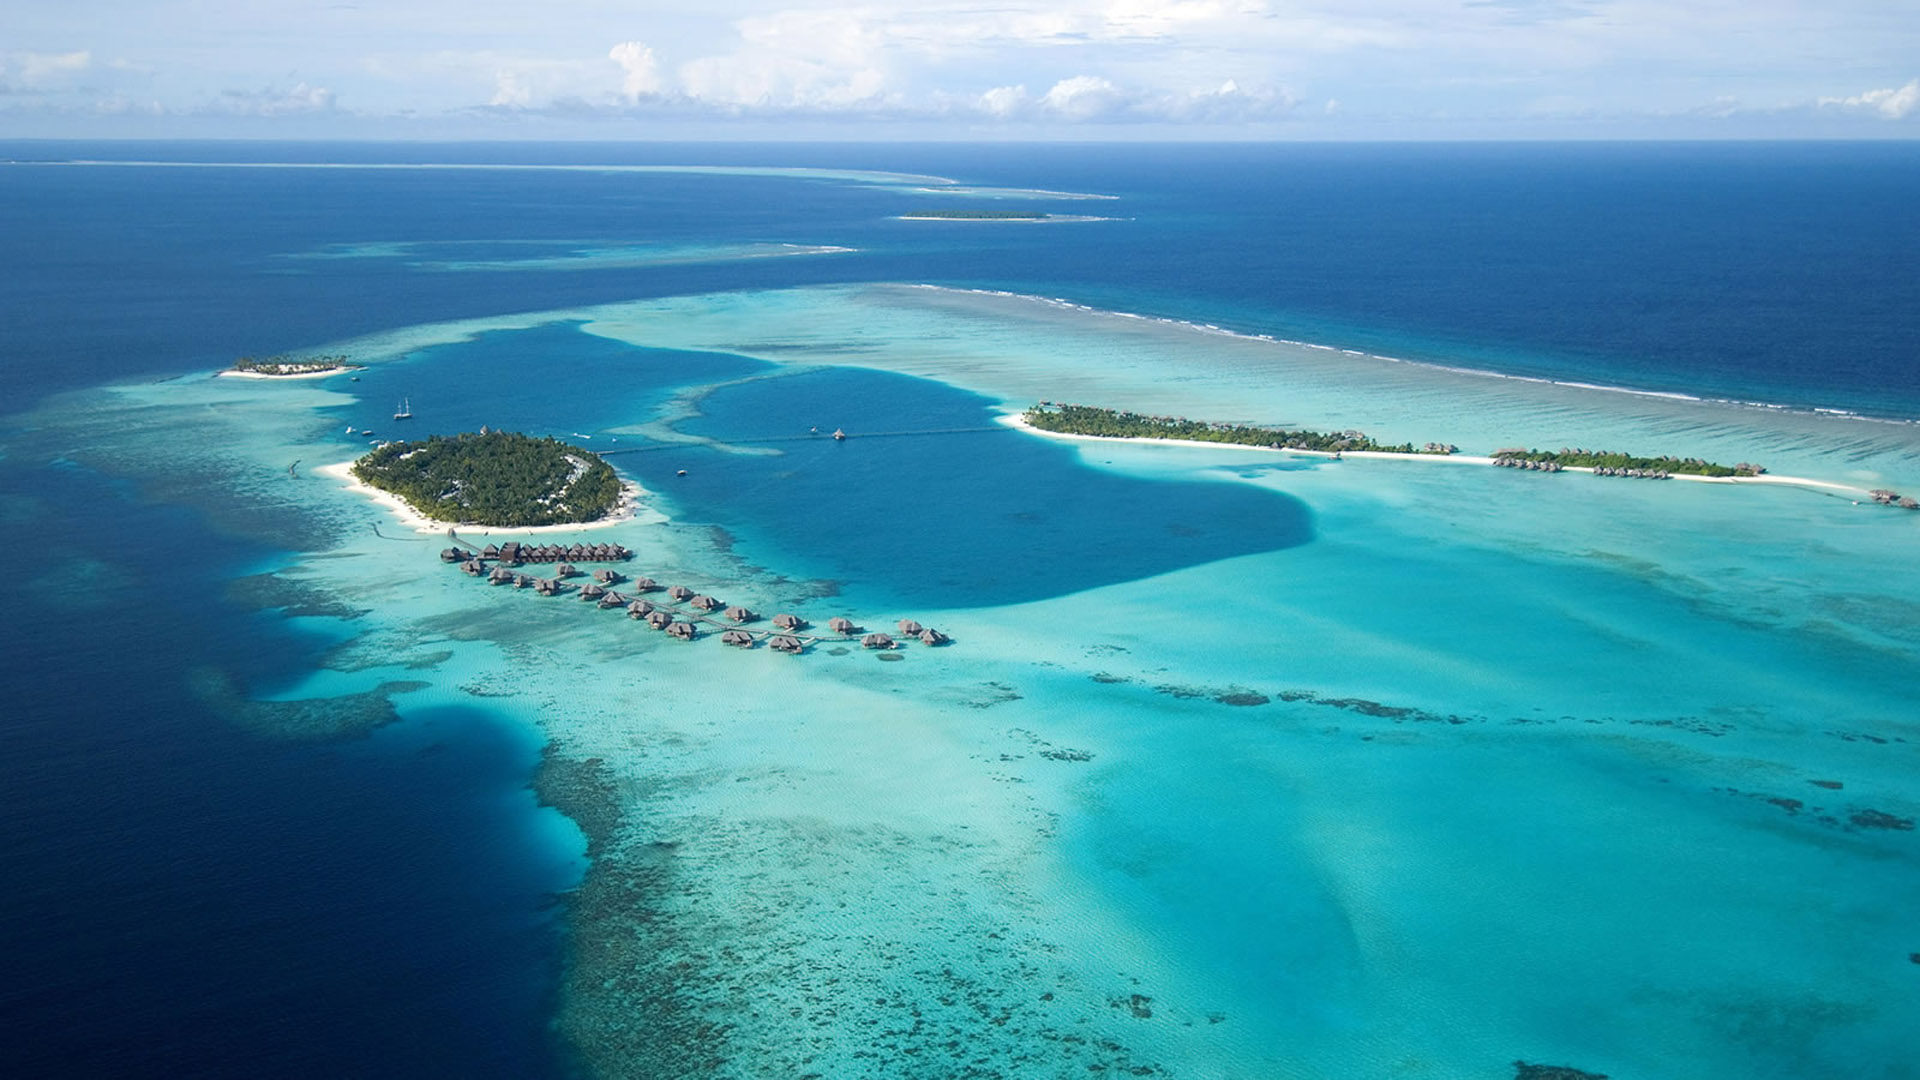 Hd Girl Wallpaper For Android Conrad Maldives Rangali Island Resort Indian Ocean Aerial